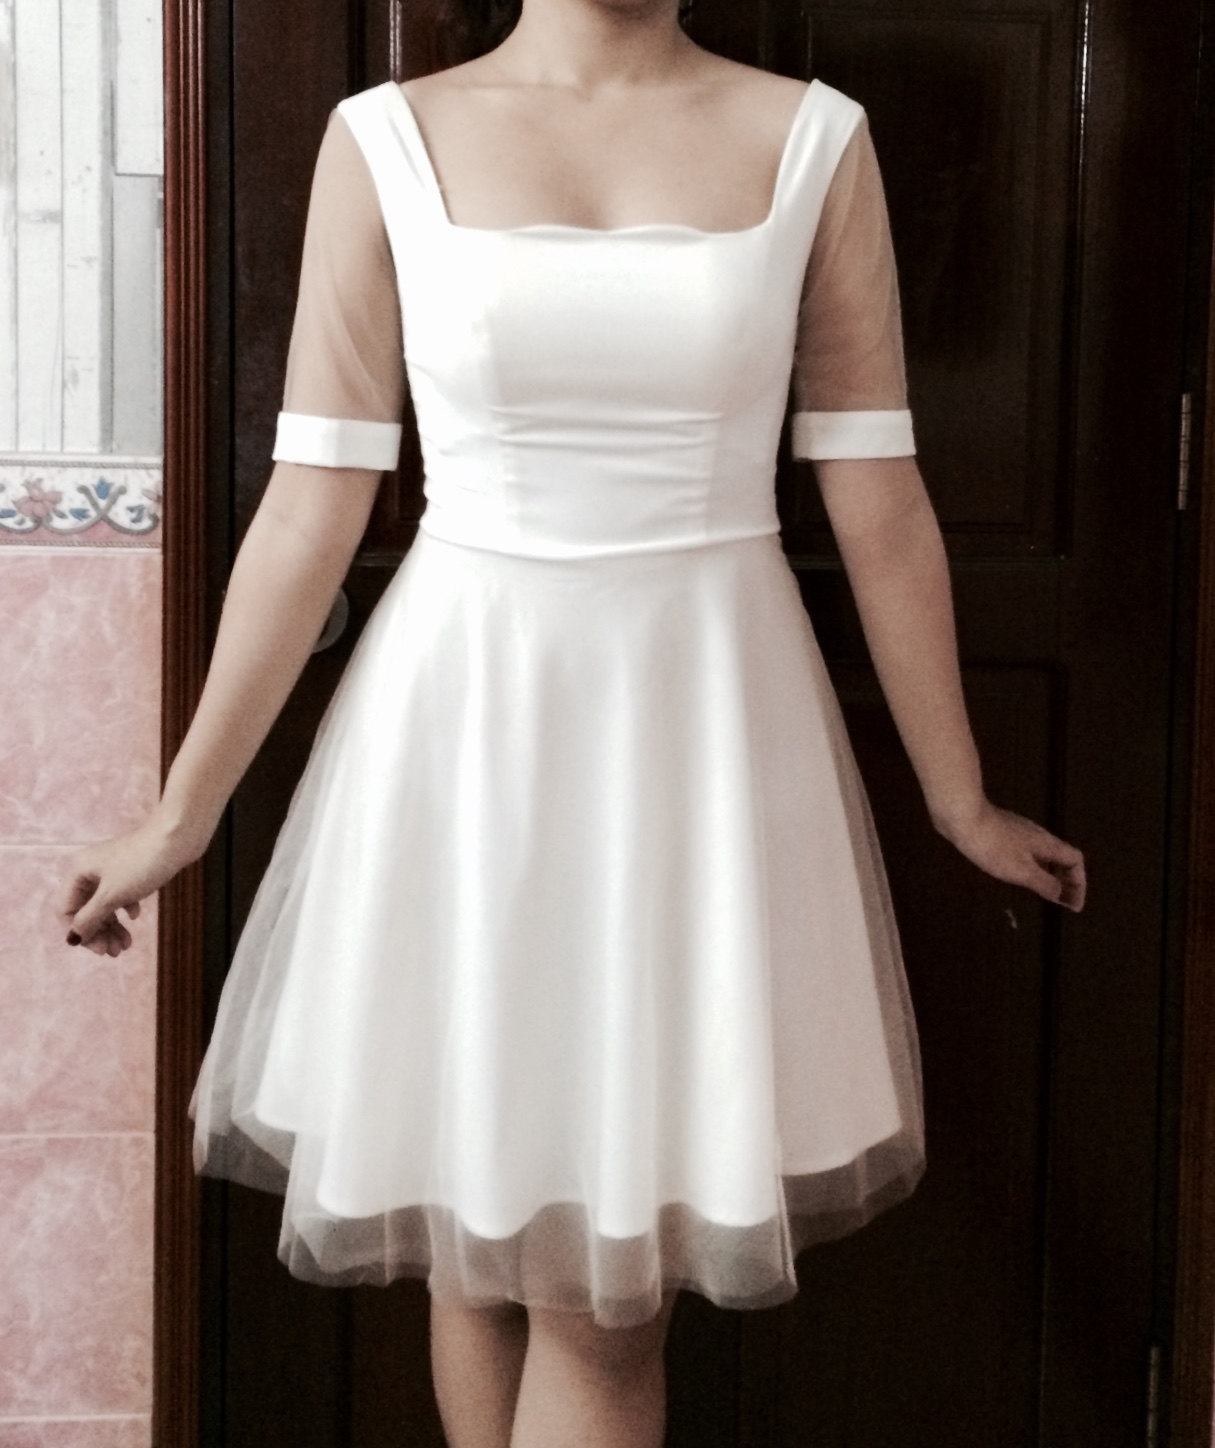 Snow White tulle dress